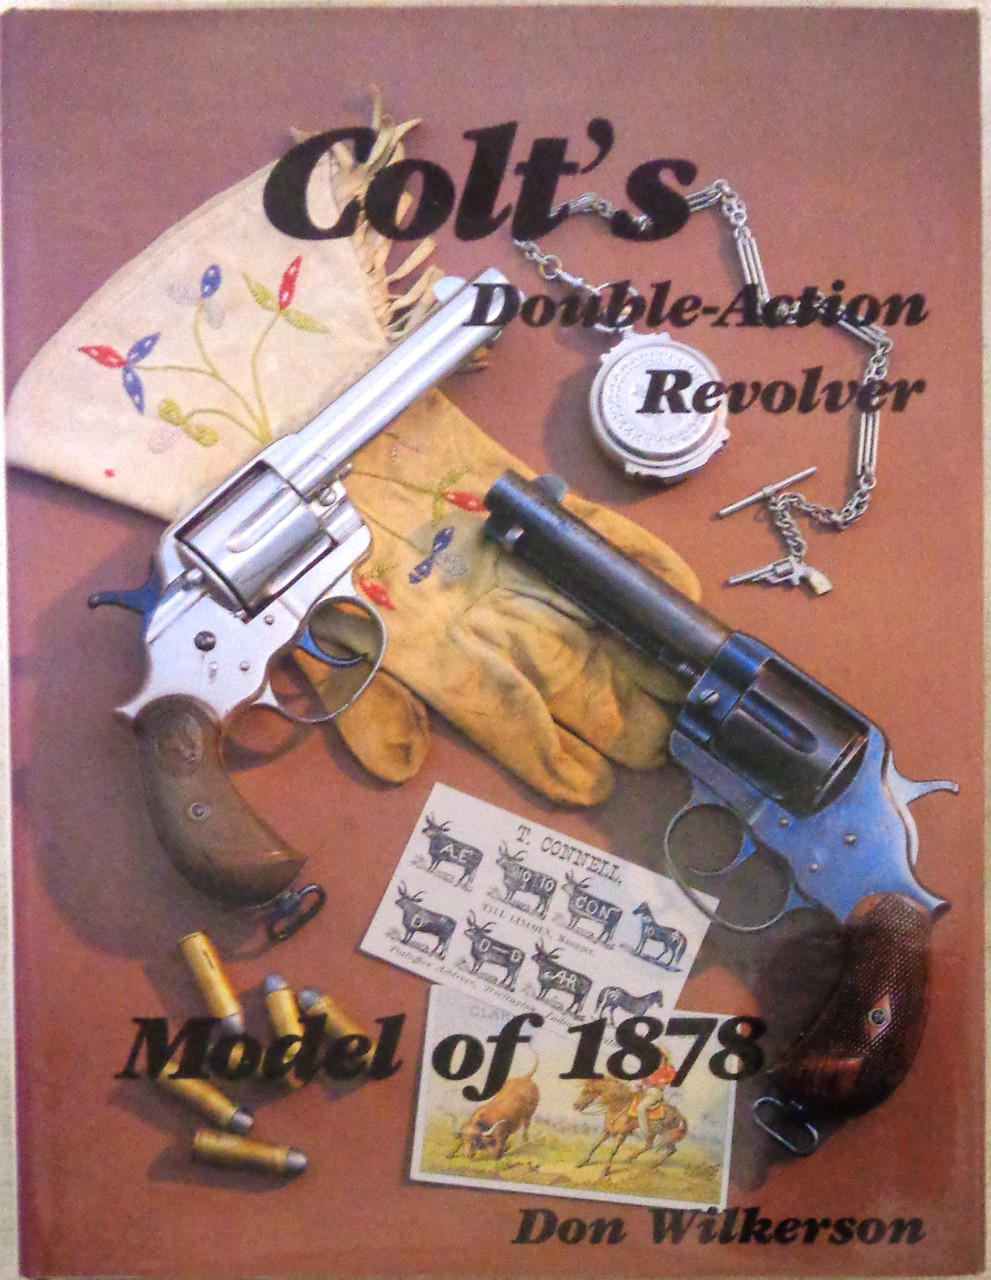 Colt's Double-Action Revolver: Model of 1878 by Don Wilkerson